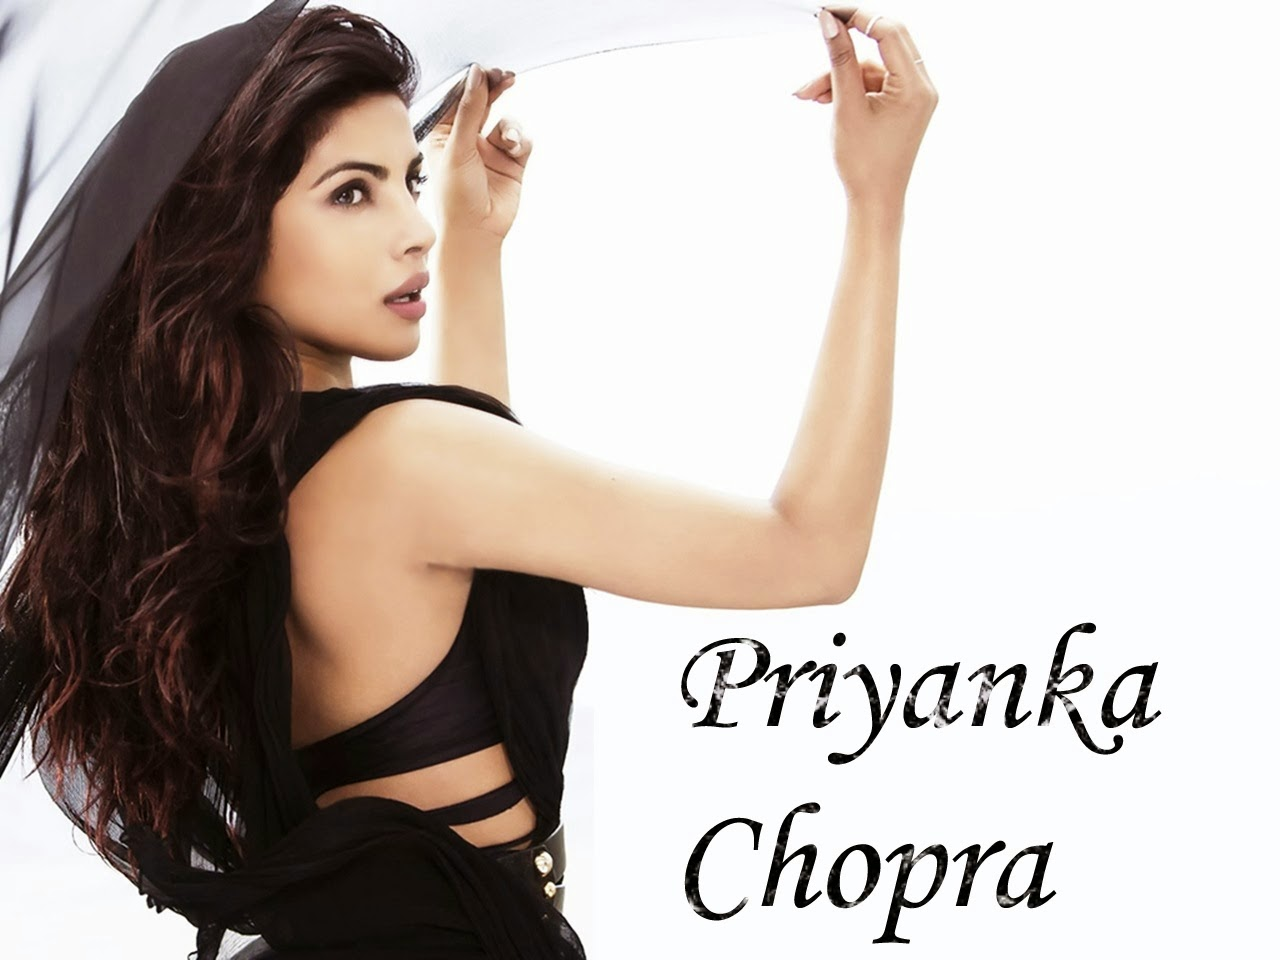 Priyanka Chopra hot unseen hd wallpapers collection